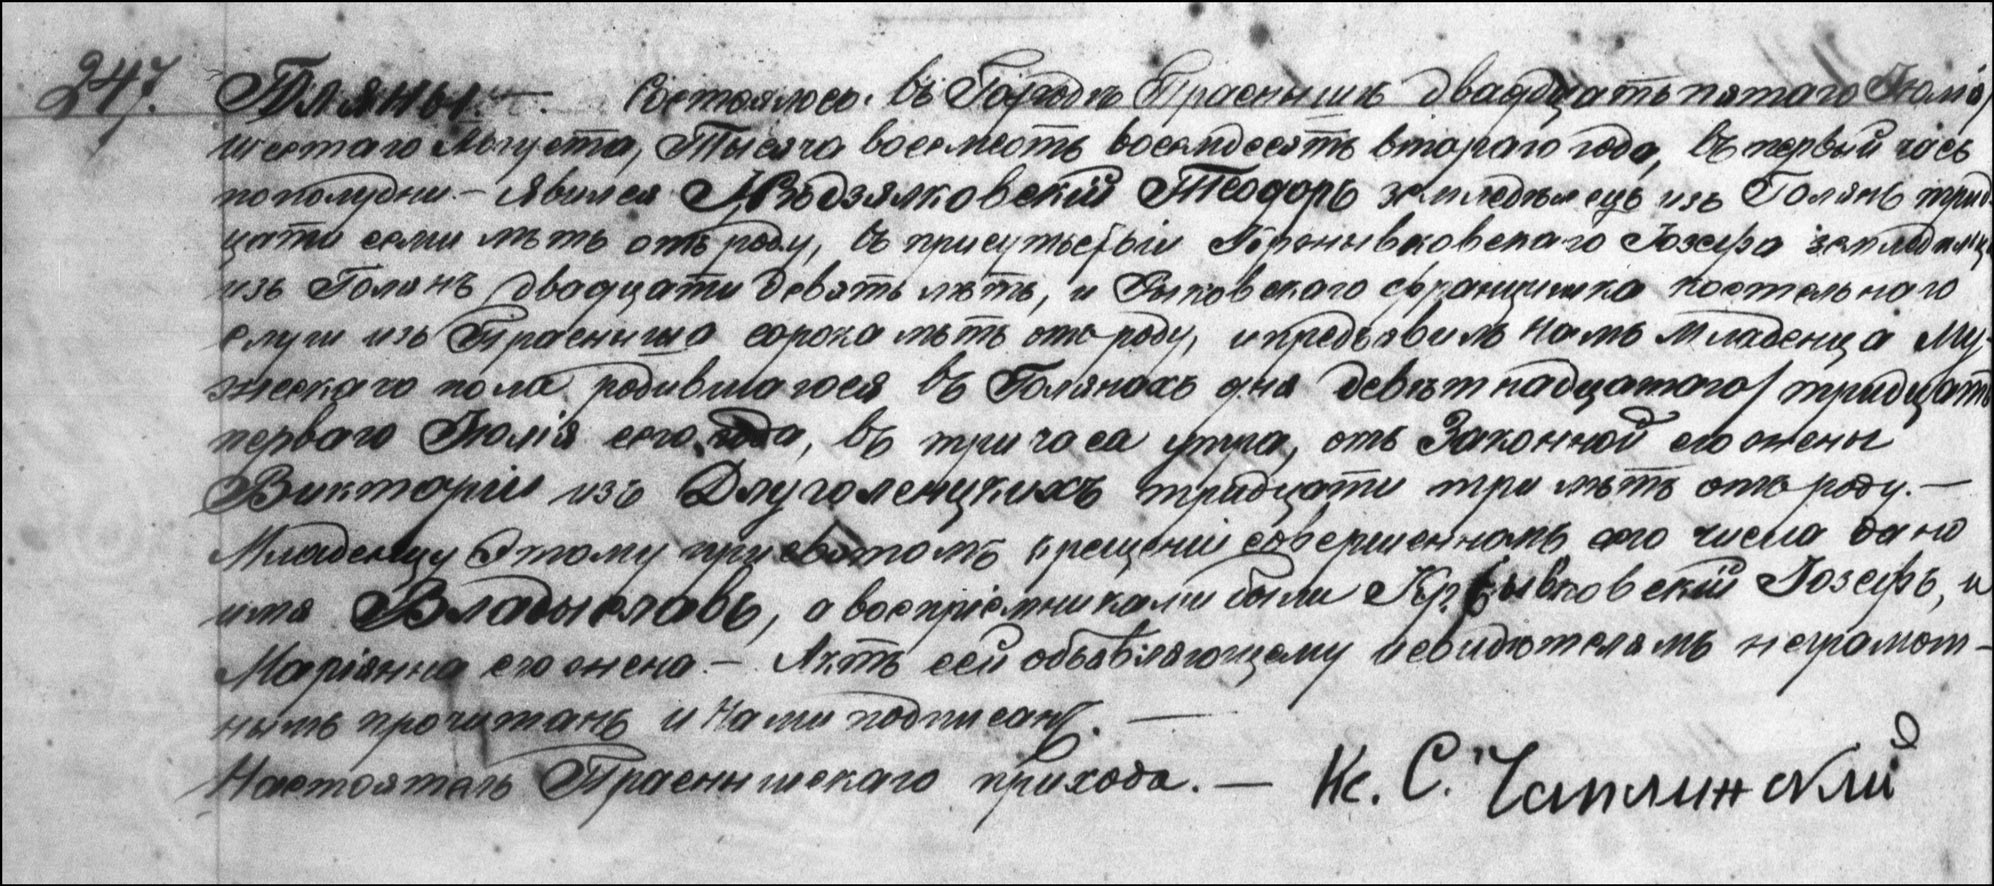 The Birth and Baptismal Record of Wladyslaw Niedzialkowski - 1882